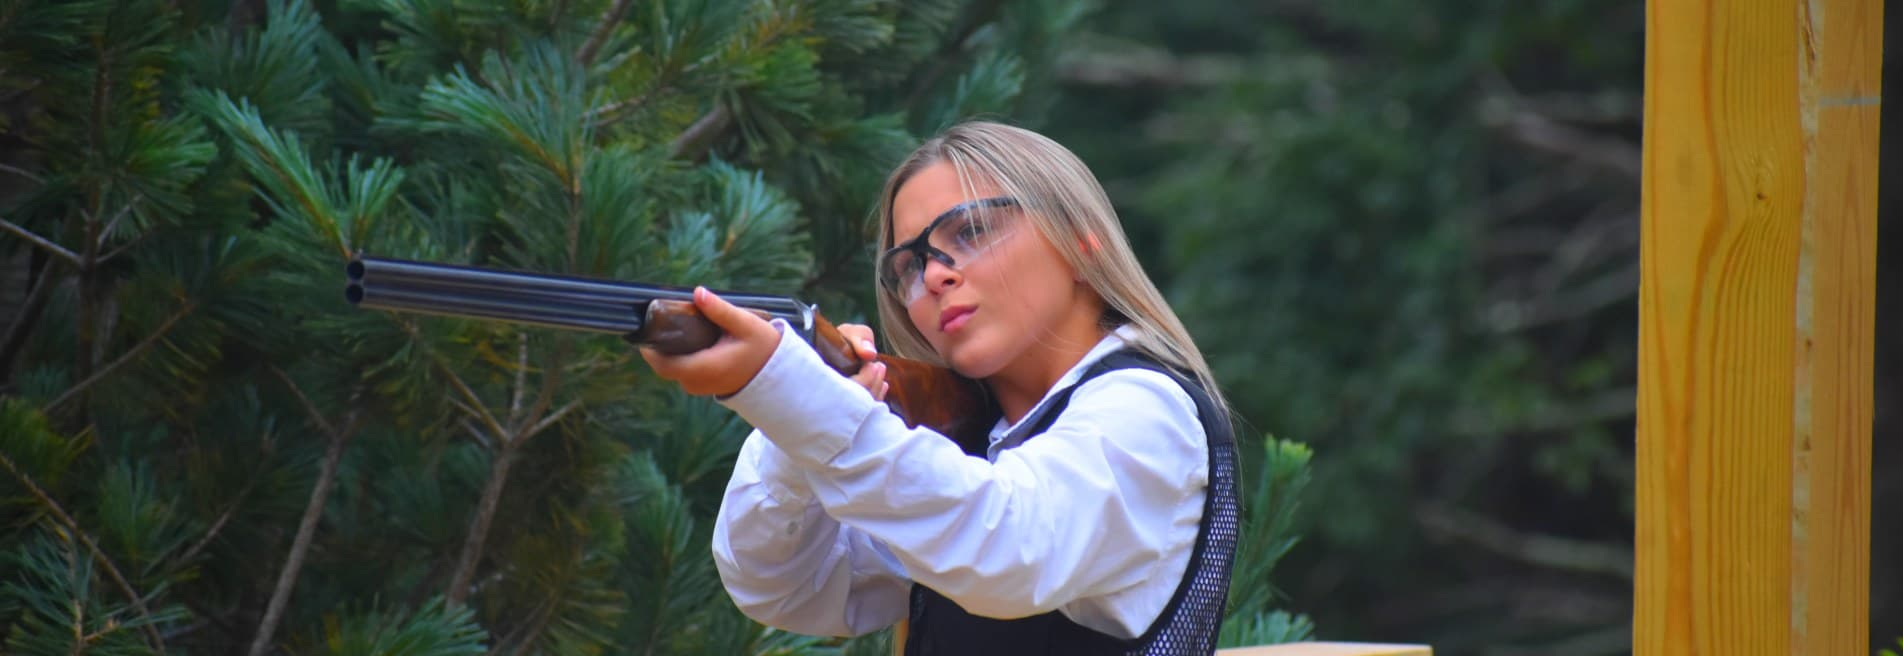 Sporting Clays at New England